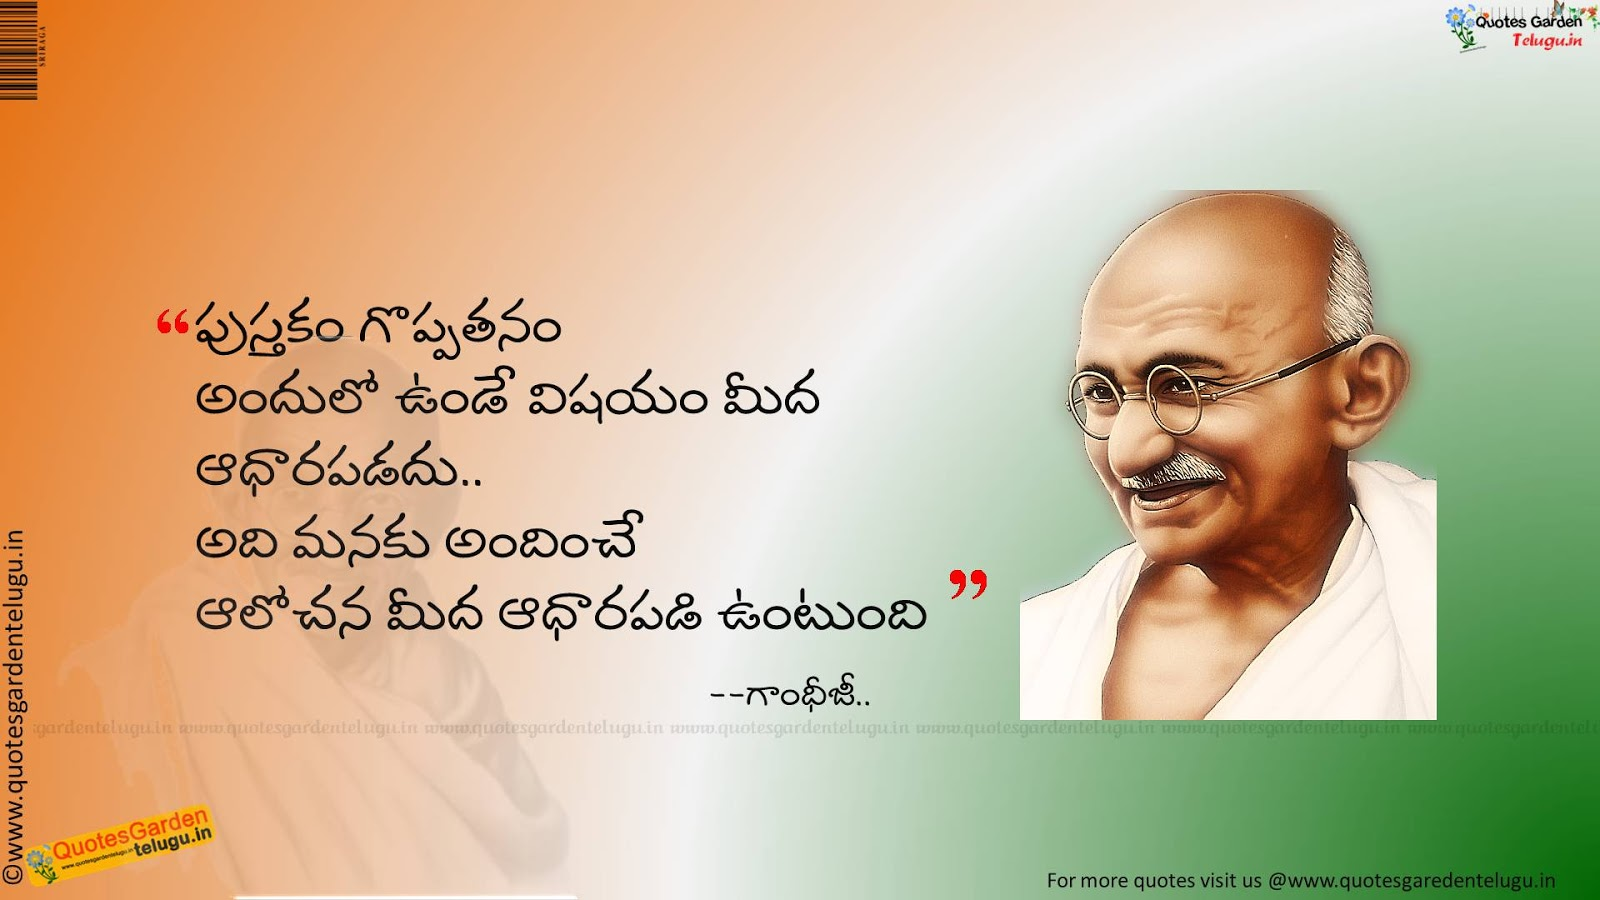 Holi Wallpaper With Quotes In Hindi Inspirational Thoughts From Mahatma Gandhi In Telugu